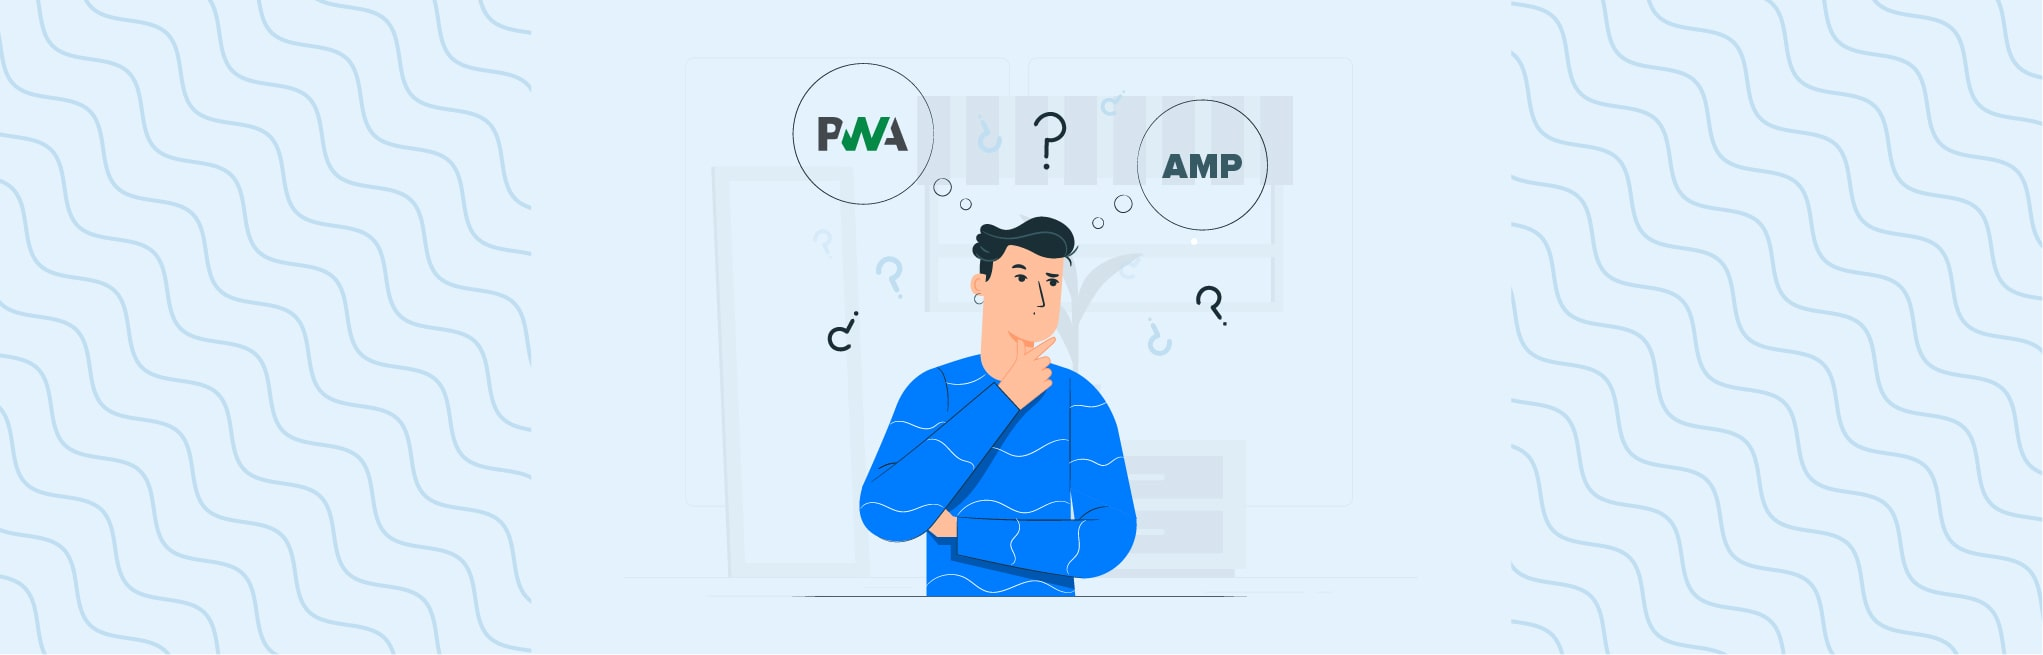 PWA, AMP or PWAMP, which one is good for your business